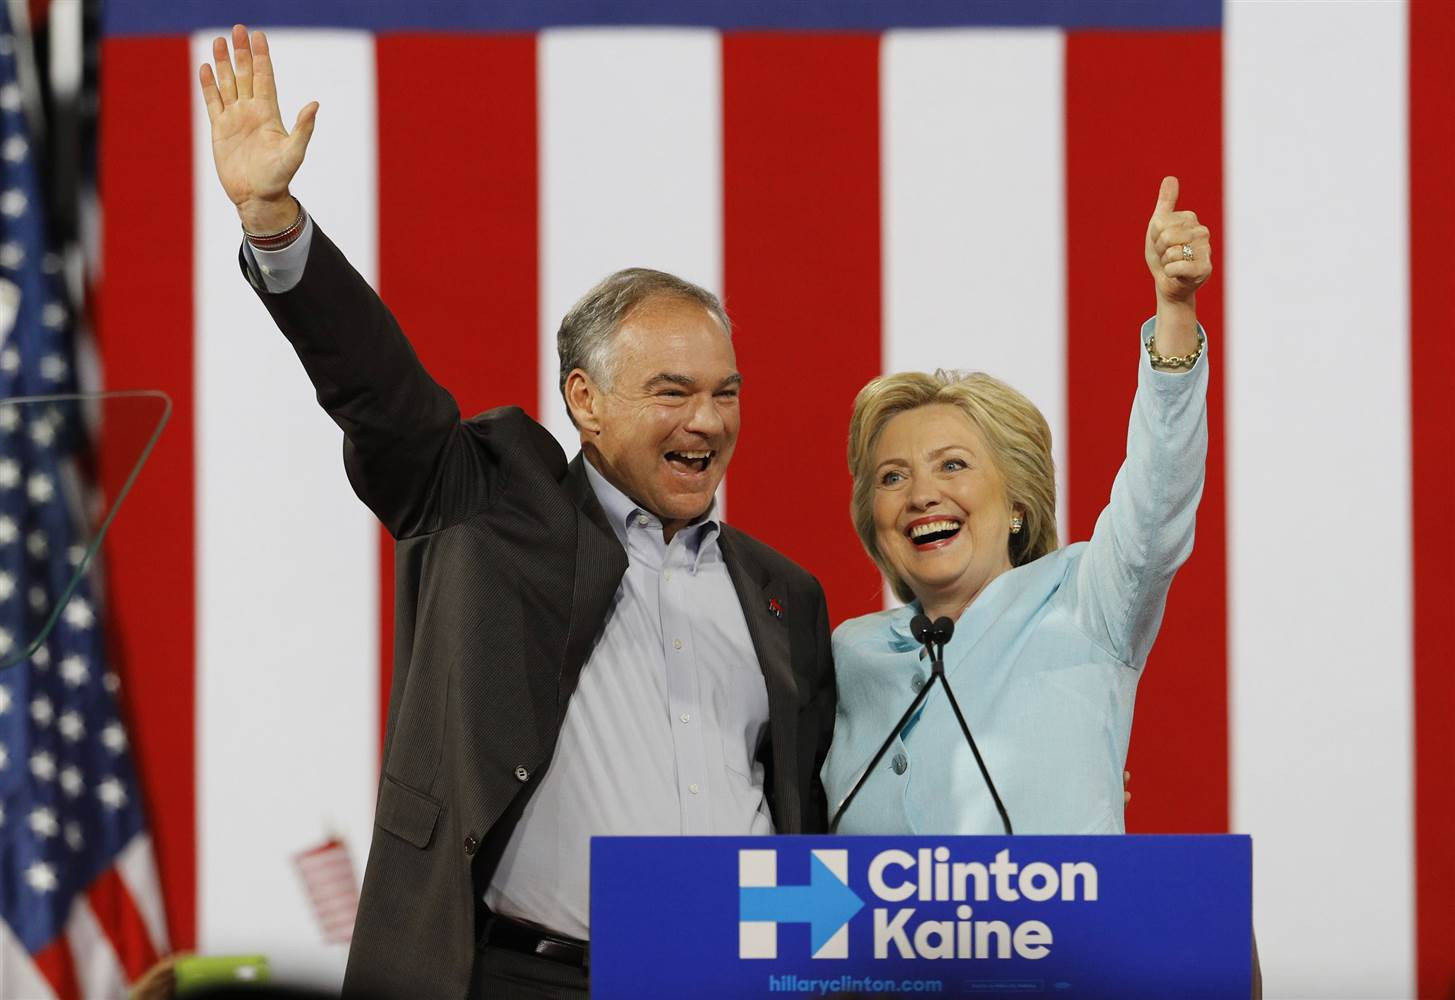 Tim Kaine and Hillary Clinton standing together and smiling; Kaine is waving and Clinton is giving a thumbs up, they are in front of a giant American flag